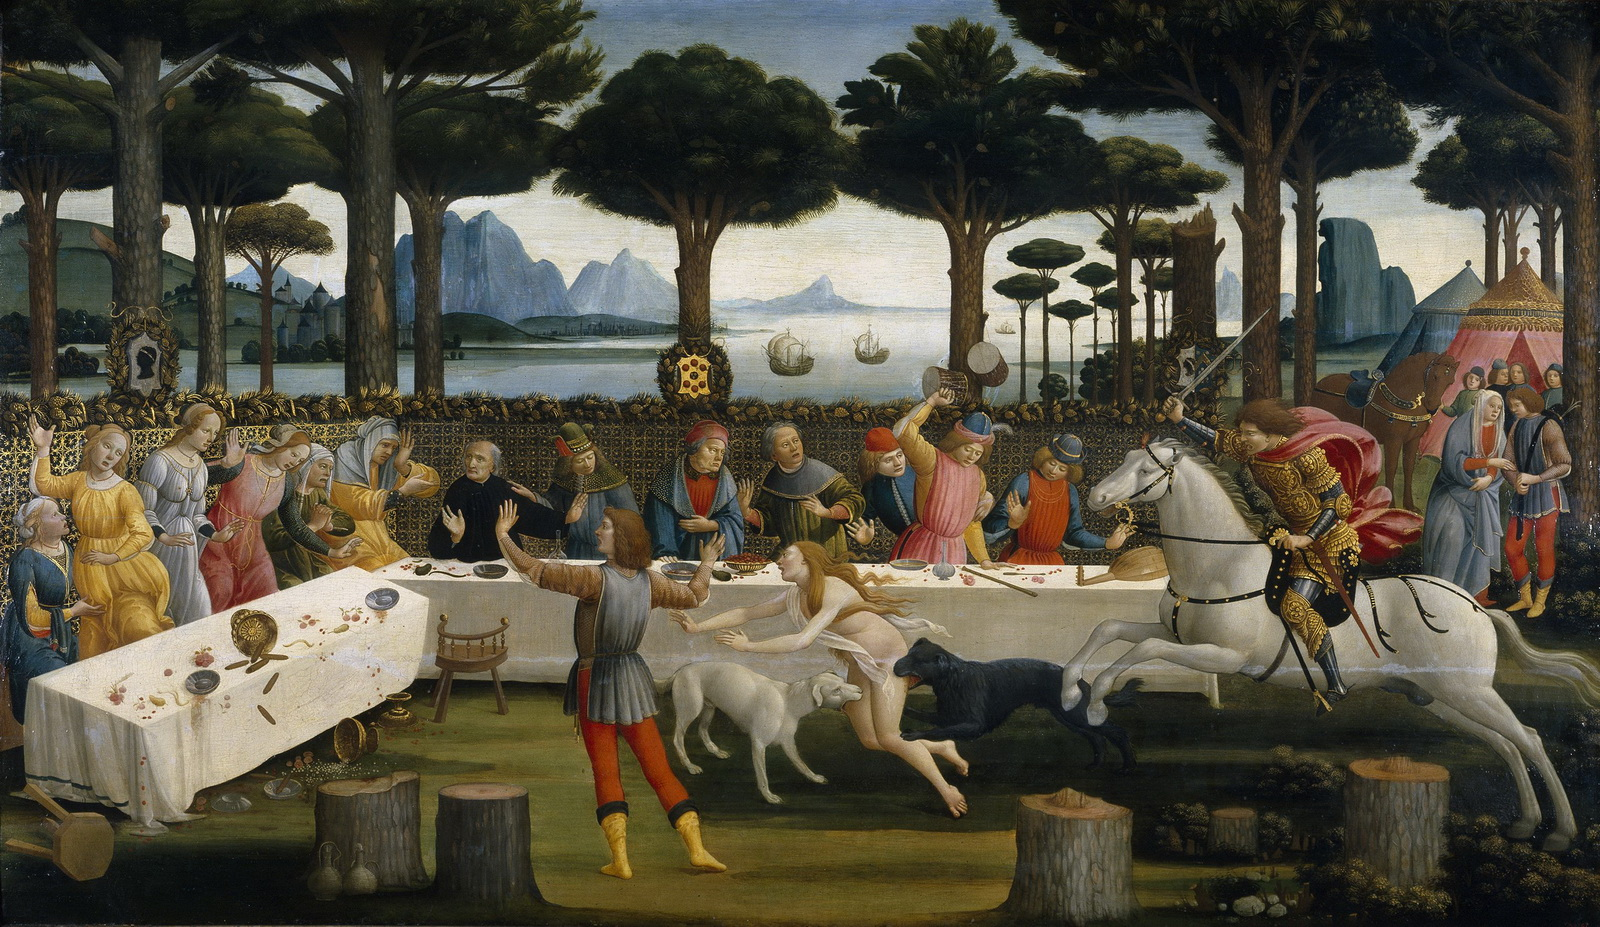 BOTICELLI The Banquet in the Pine Forest-1600